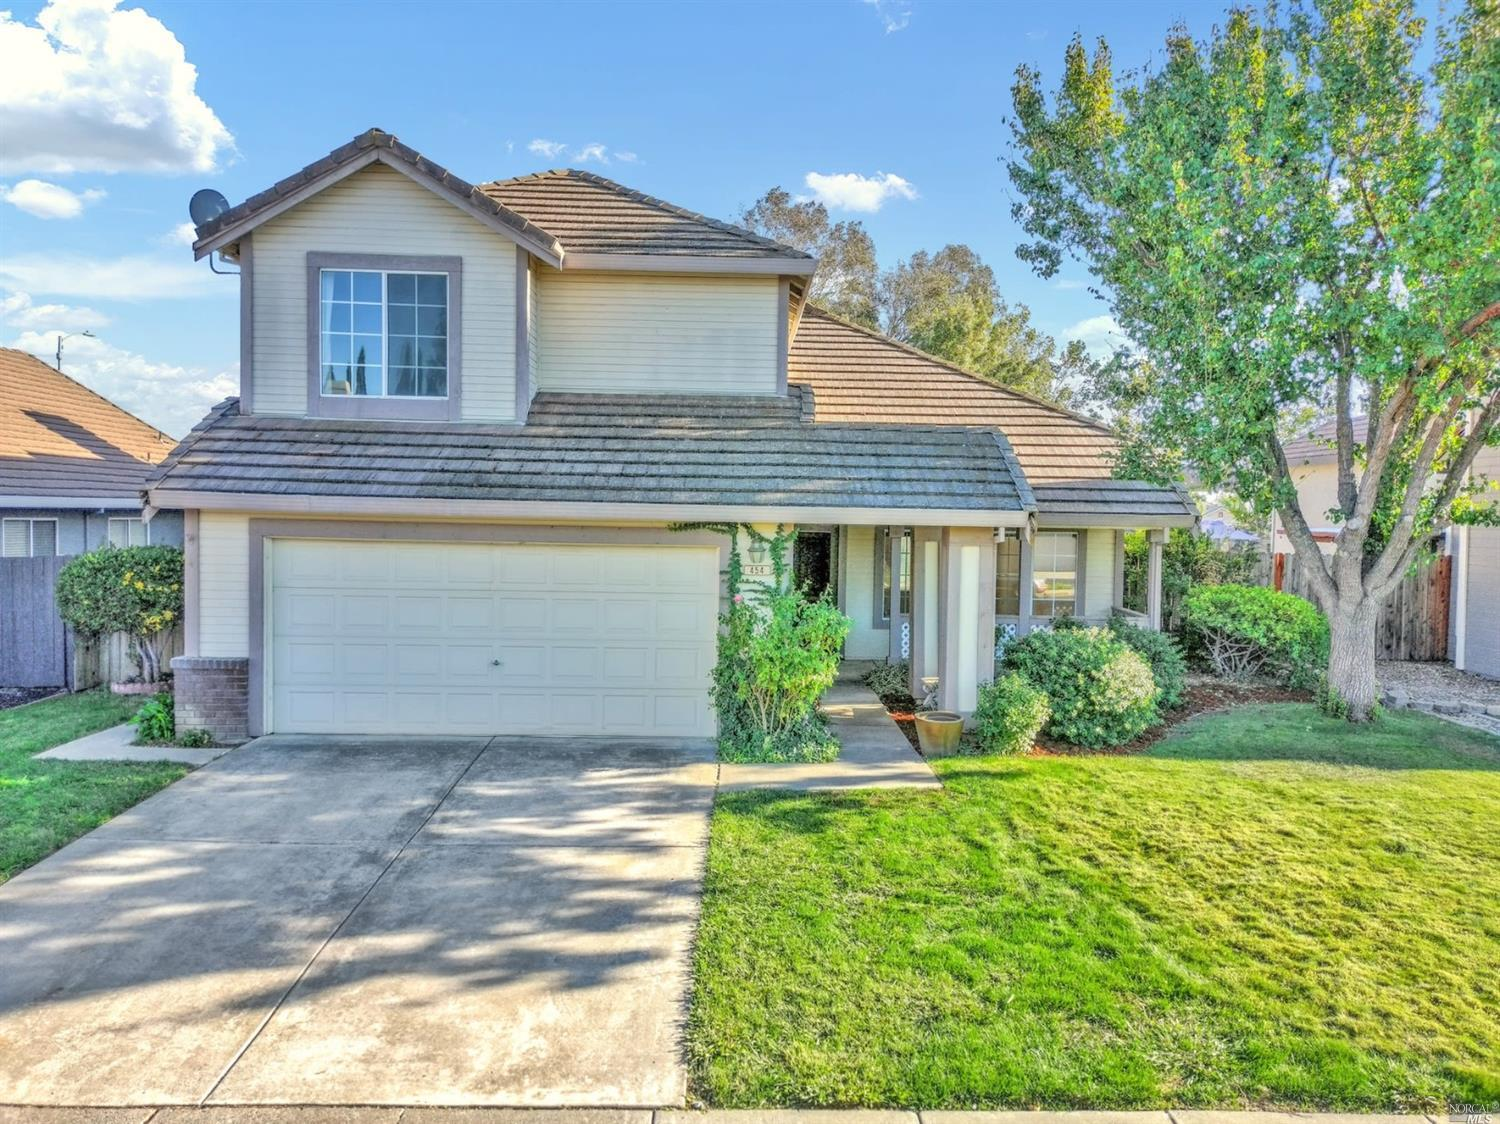 This is a beautifully remodeled five bedroom, three bath home, with vaulted ceilings, and no rear ne